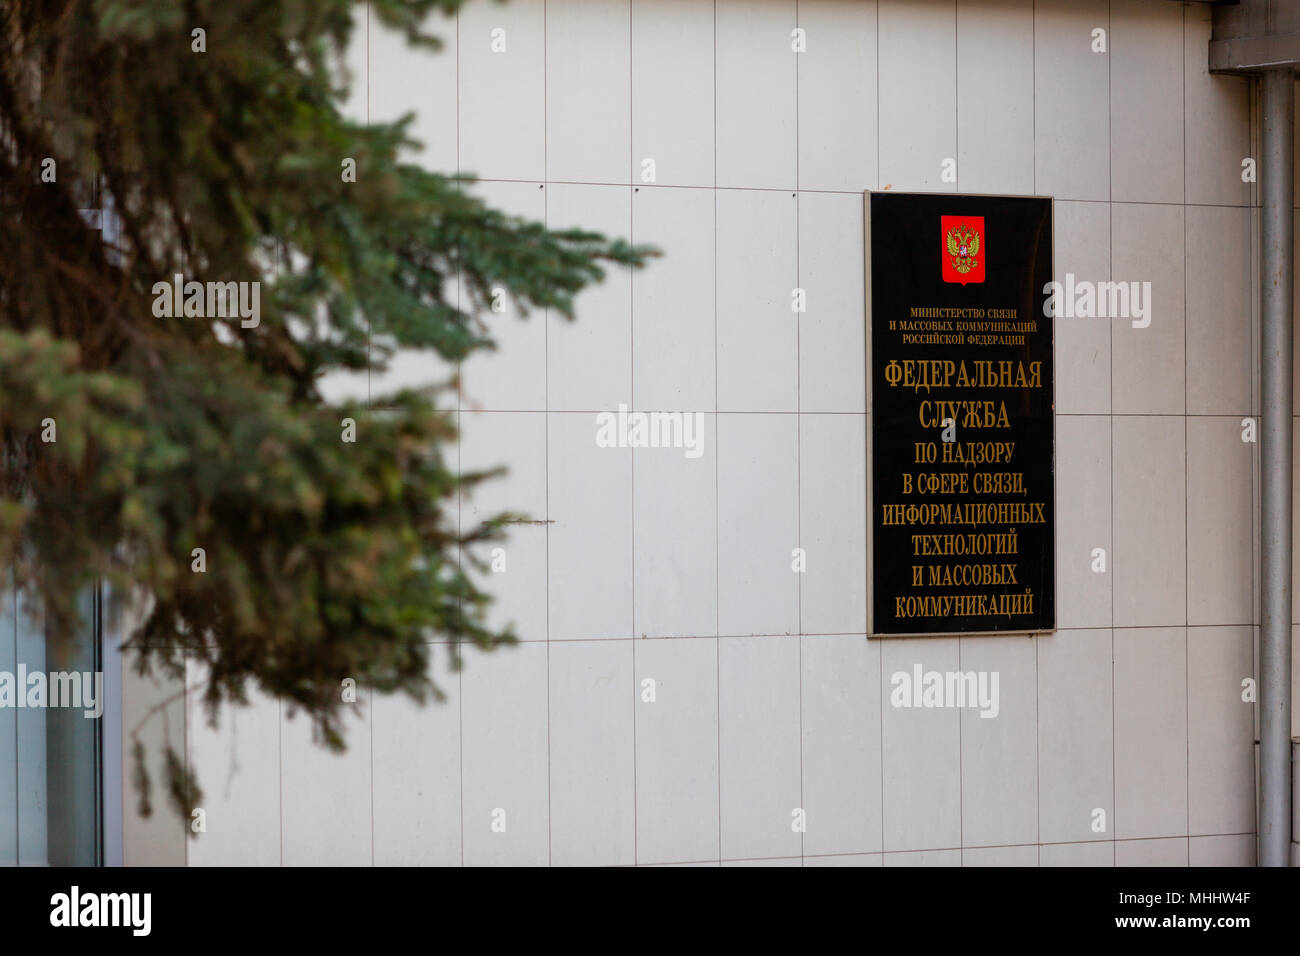 MOSCOW, RUSSIA - APRIL 30, 2018: Plaque at the entrance to the office Roskomnadzor building. After the rally on Sakharov Avenue against the blocking o Stock Photo